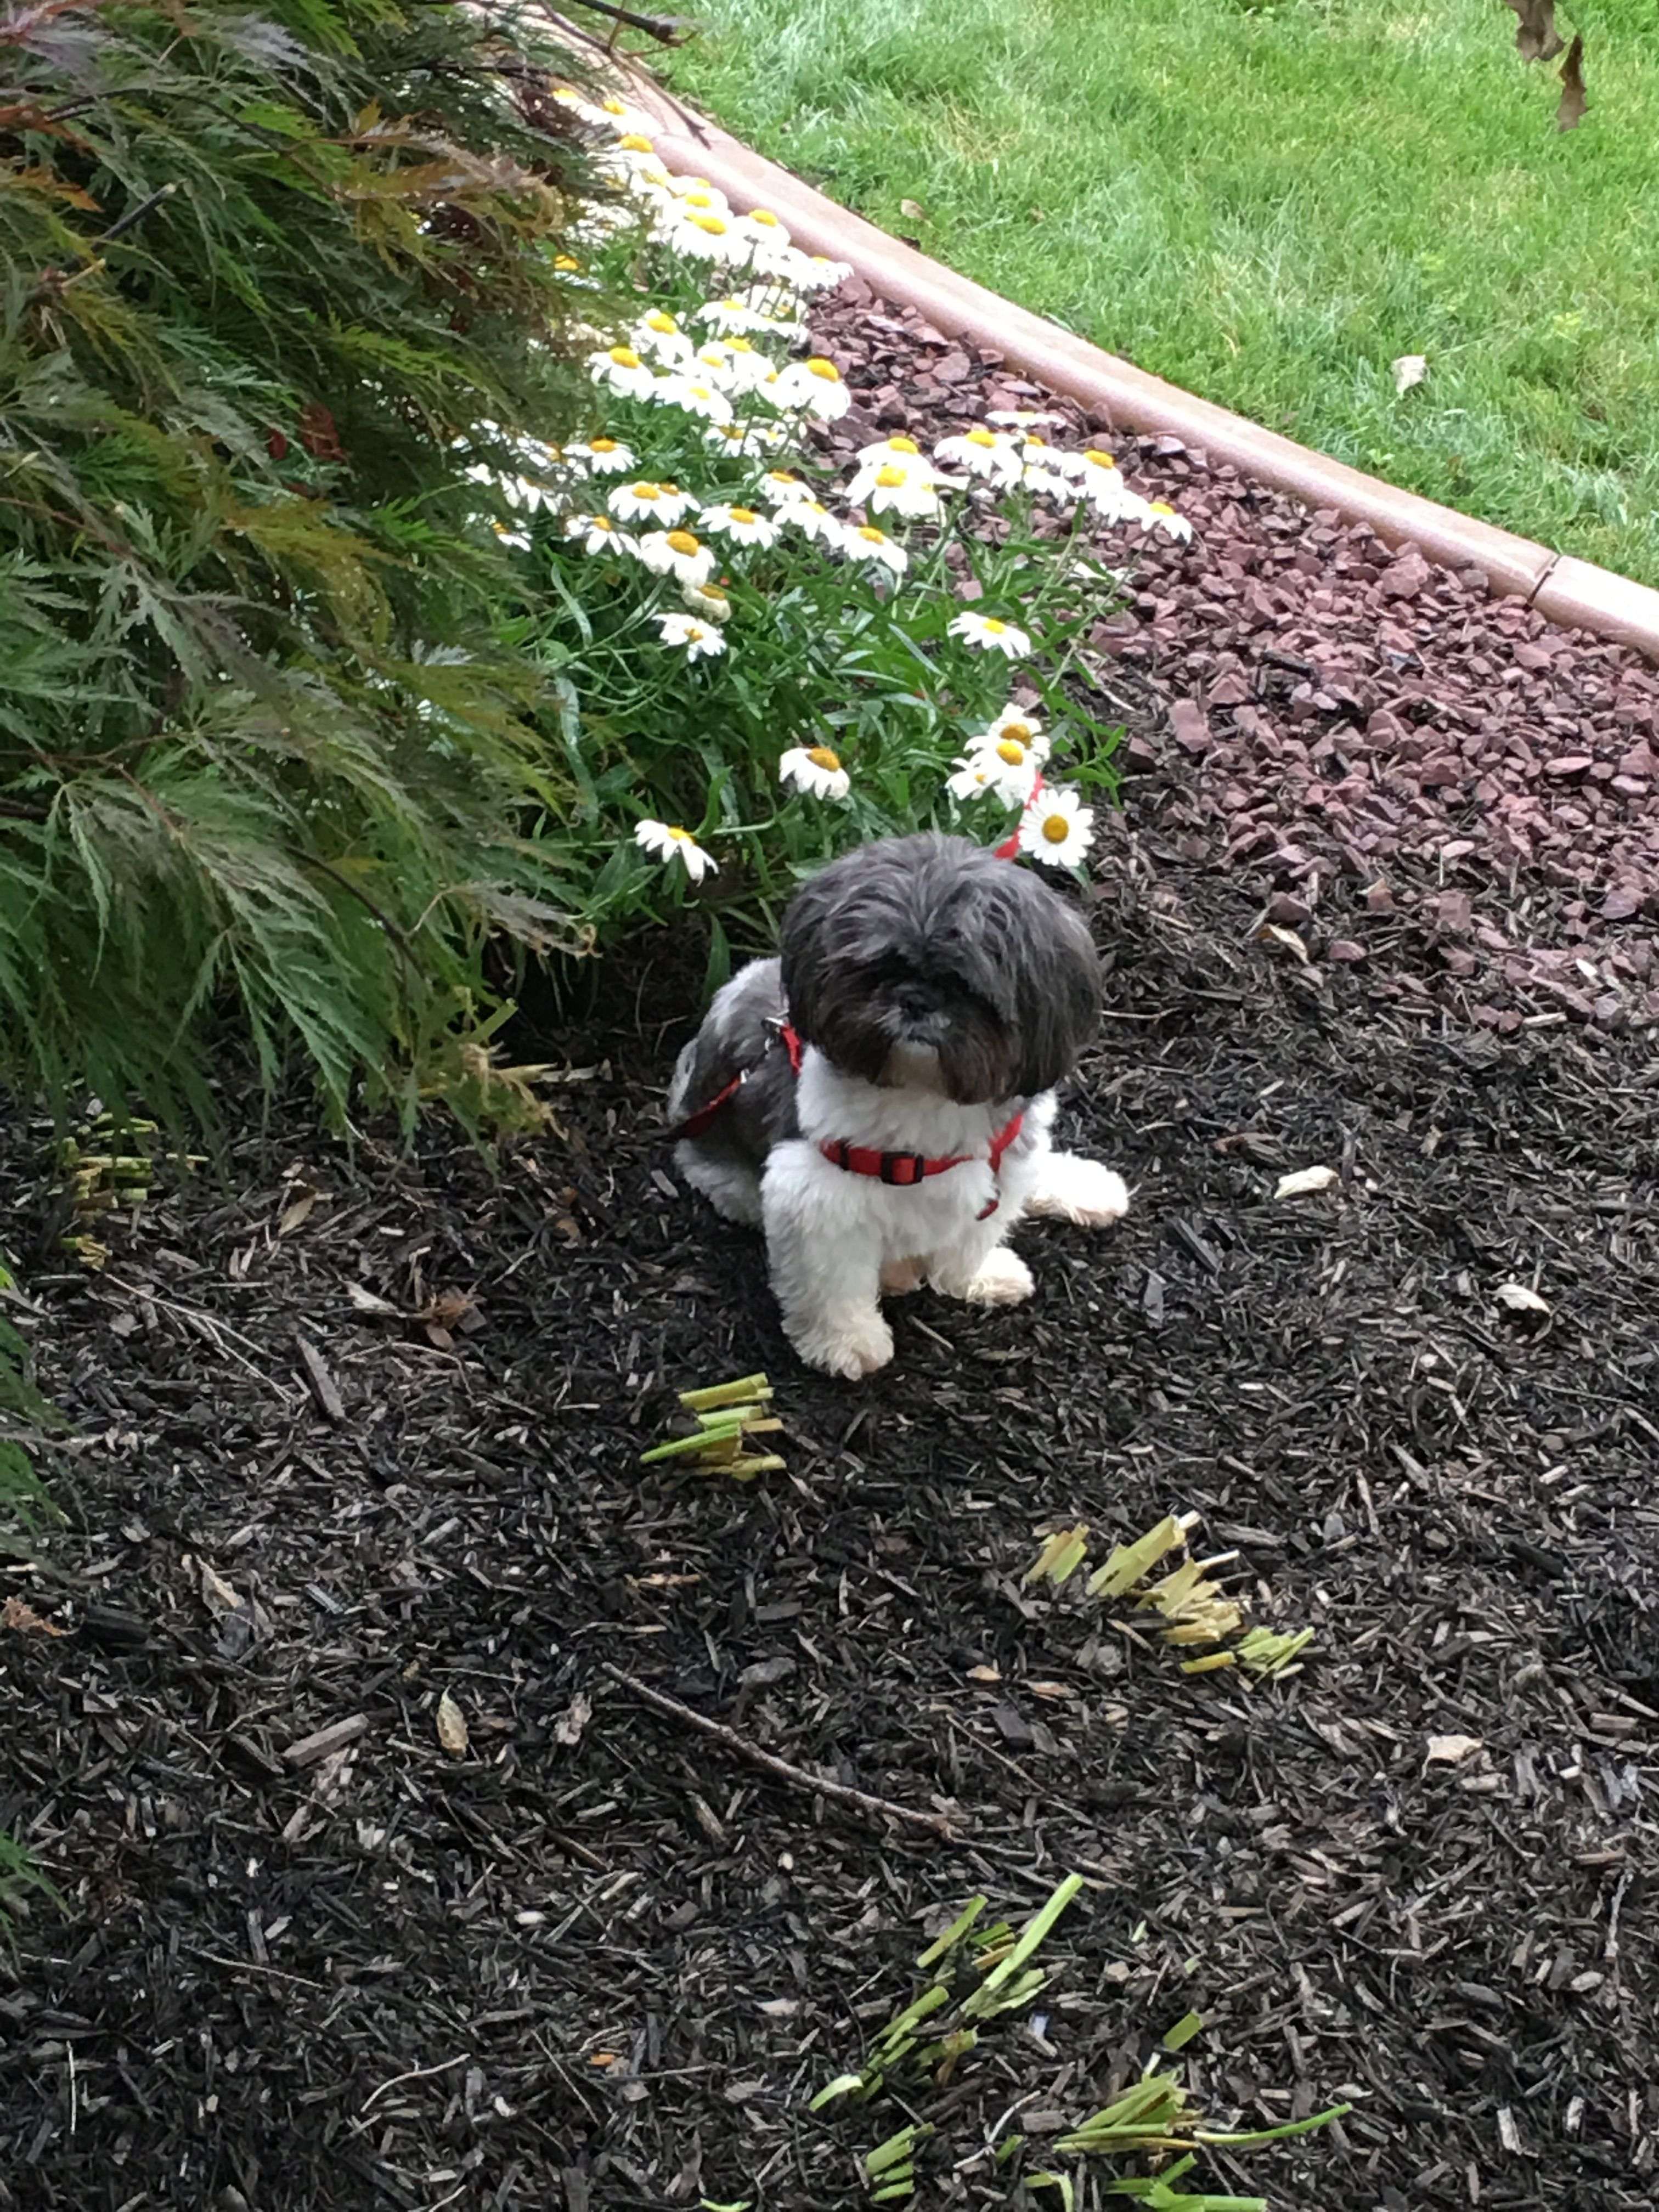 Louie has the whole yard but sits in the flower bed